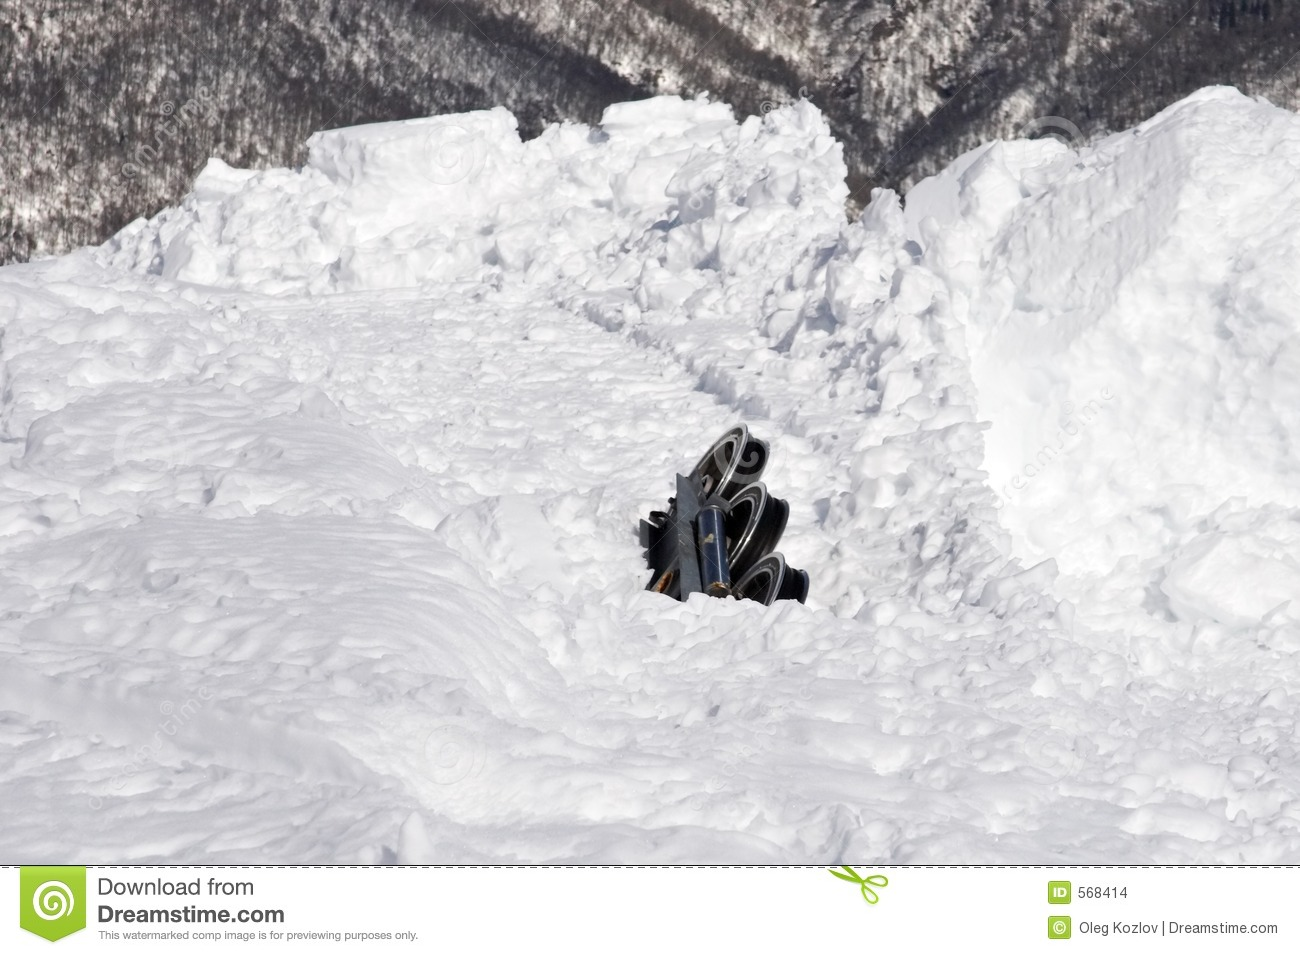 After avalanche